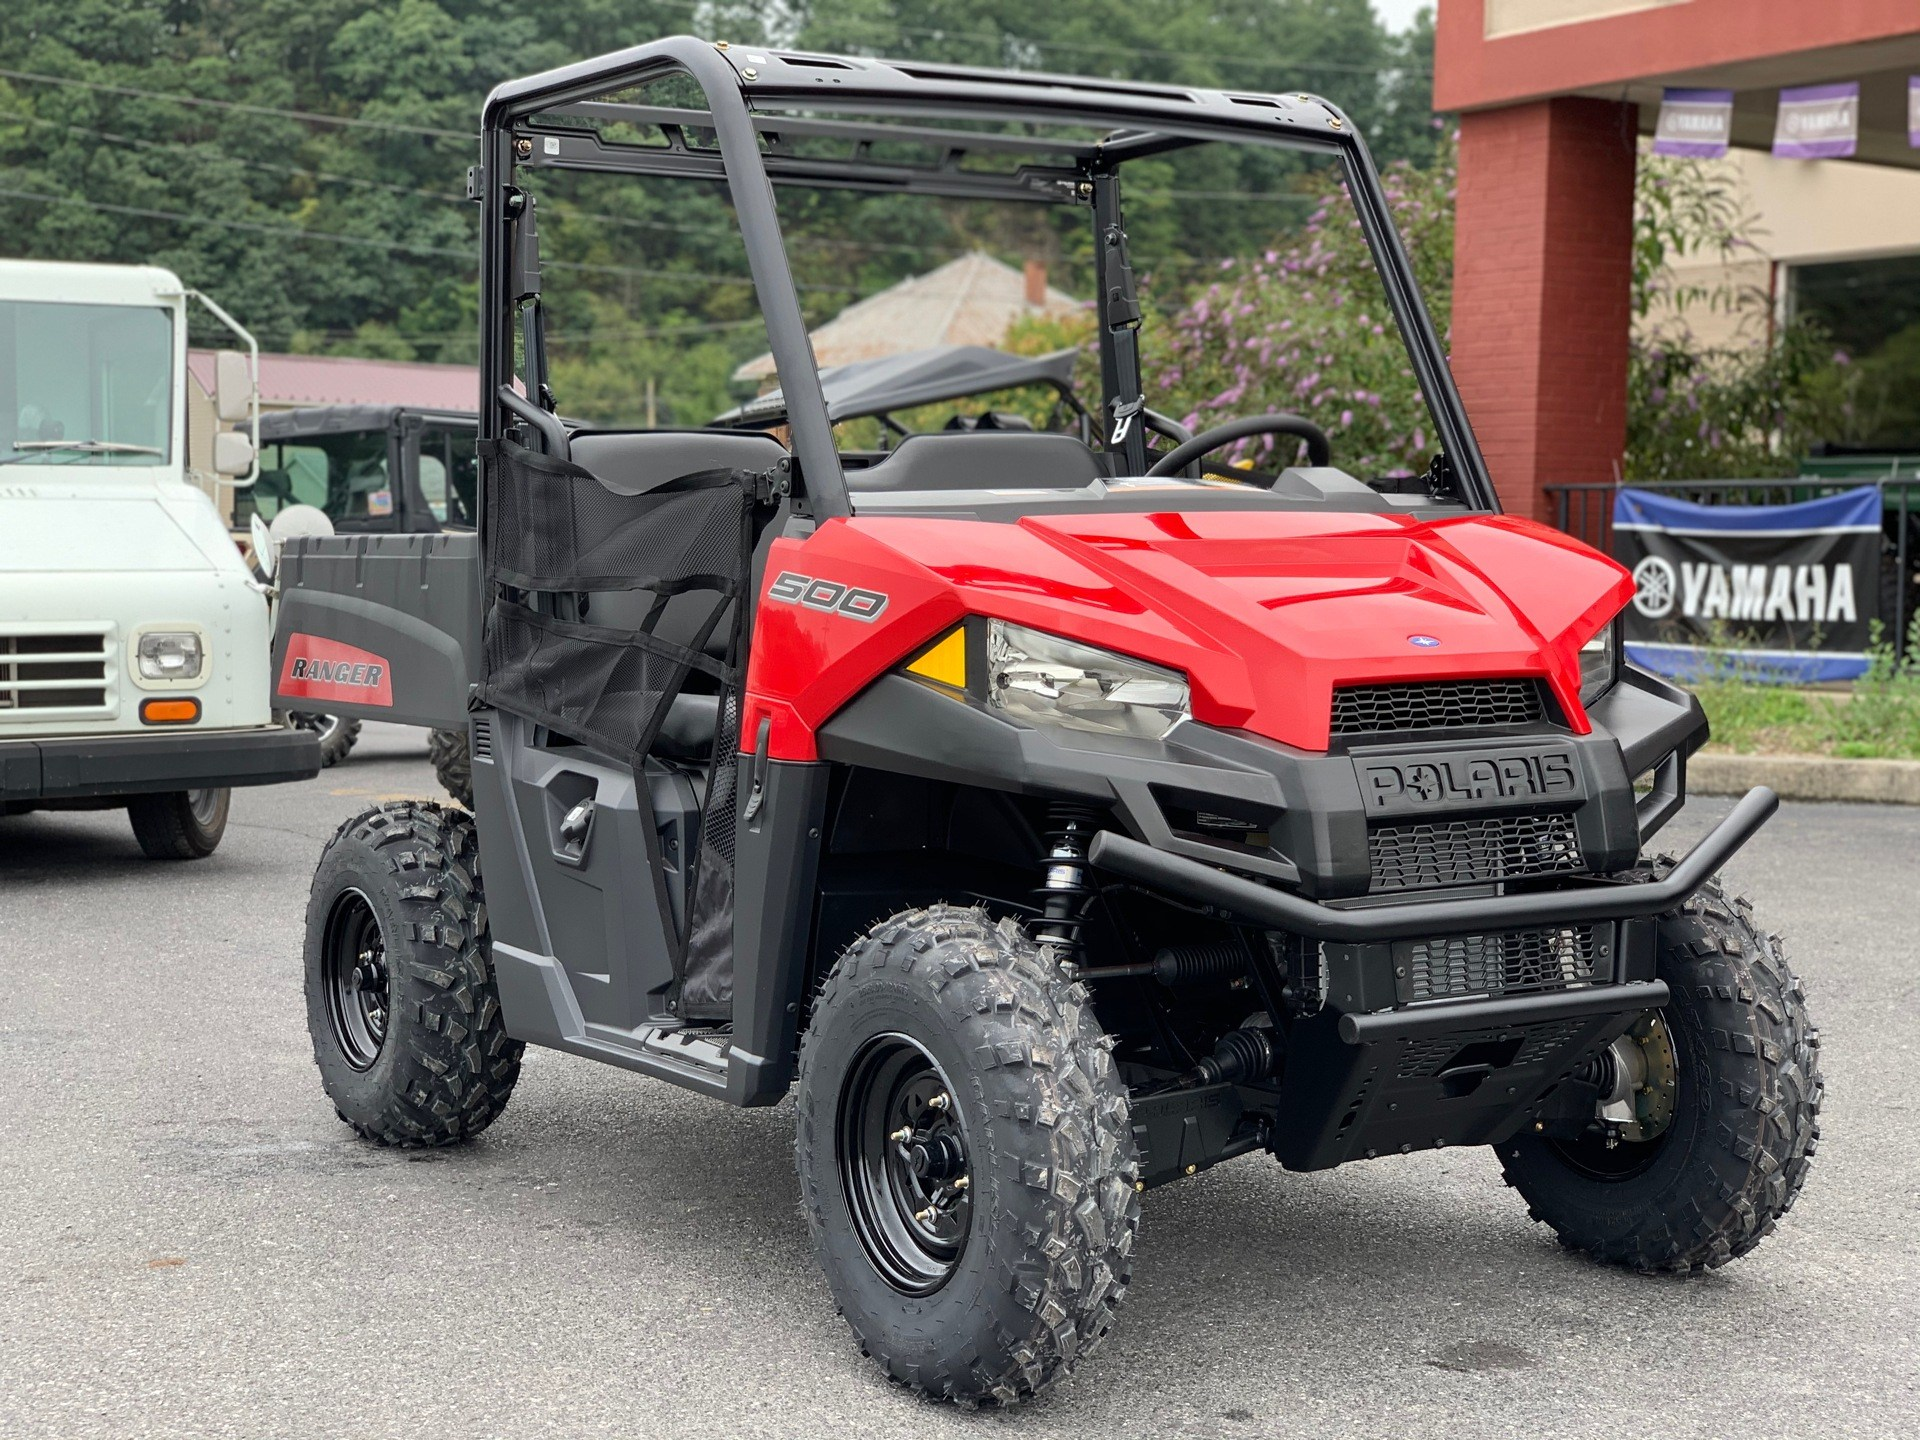 2021 Polaris Ranger 500 in Petersburg, West Virginia - Photo 2